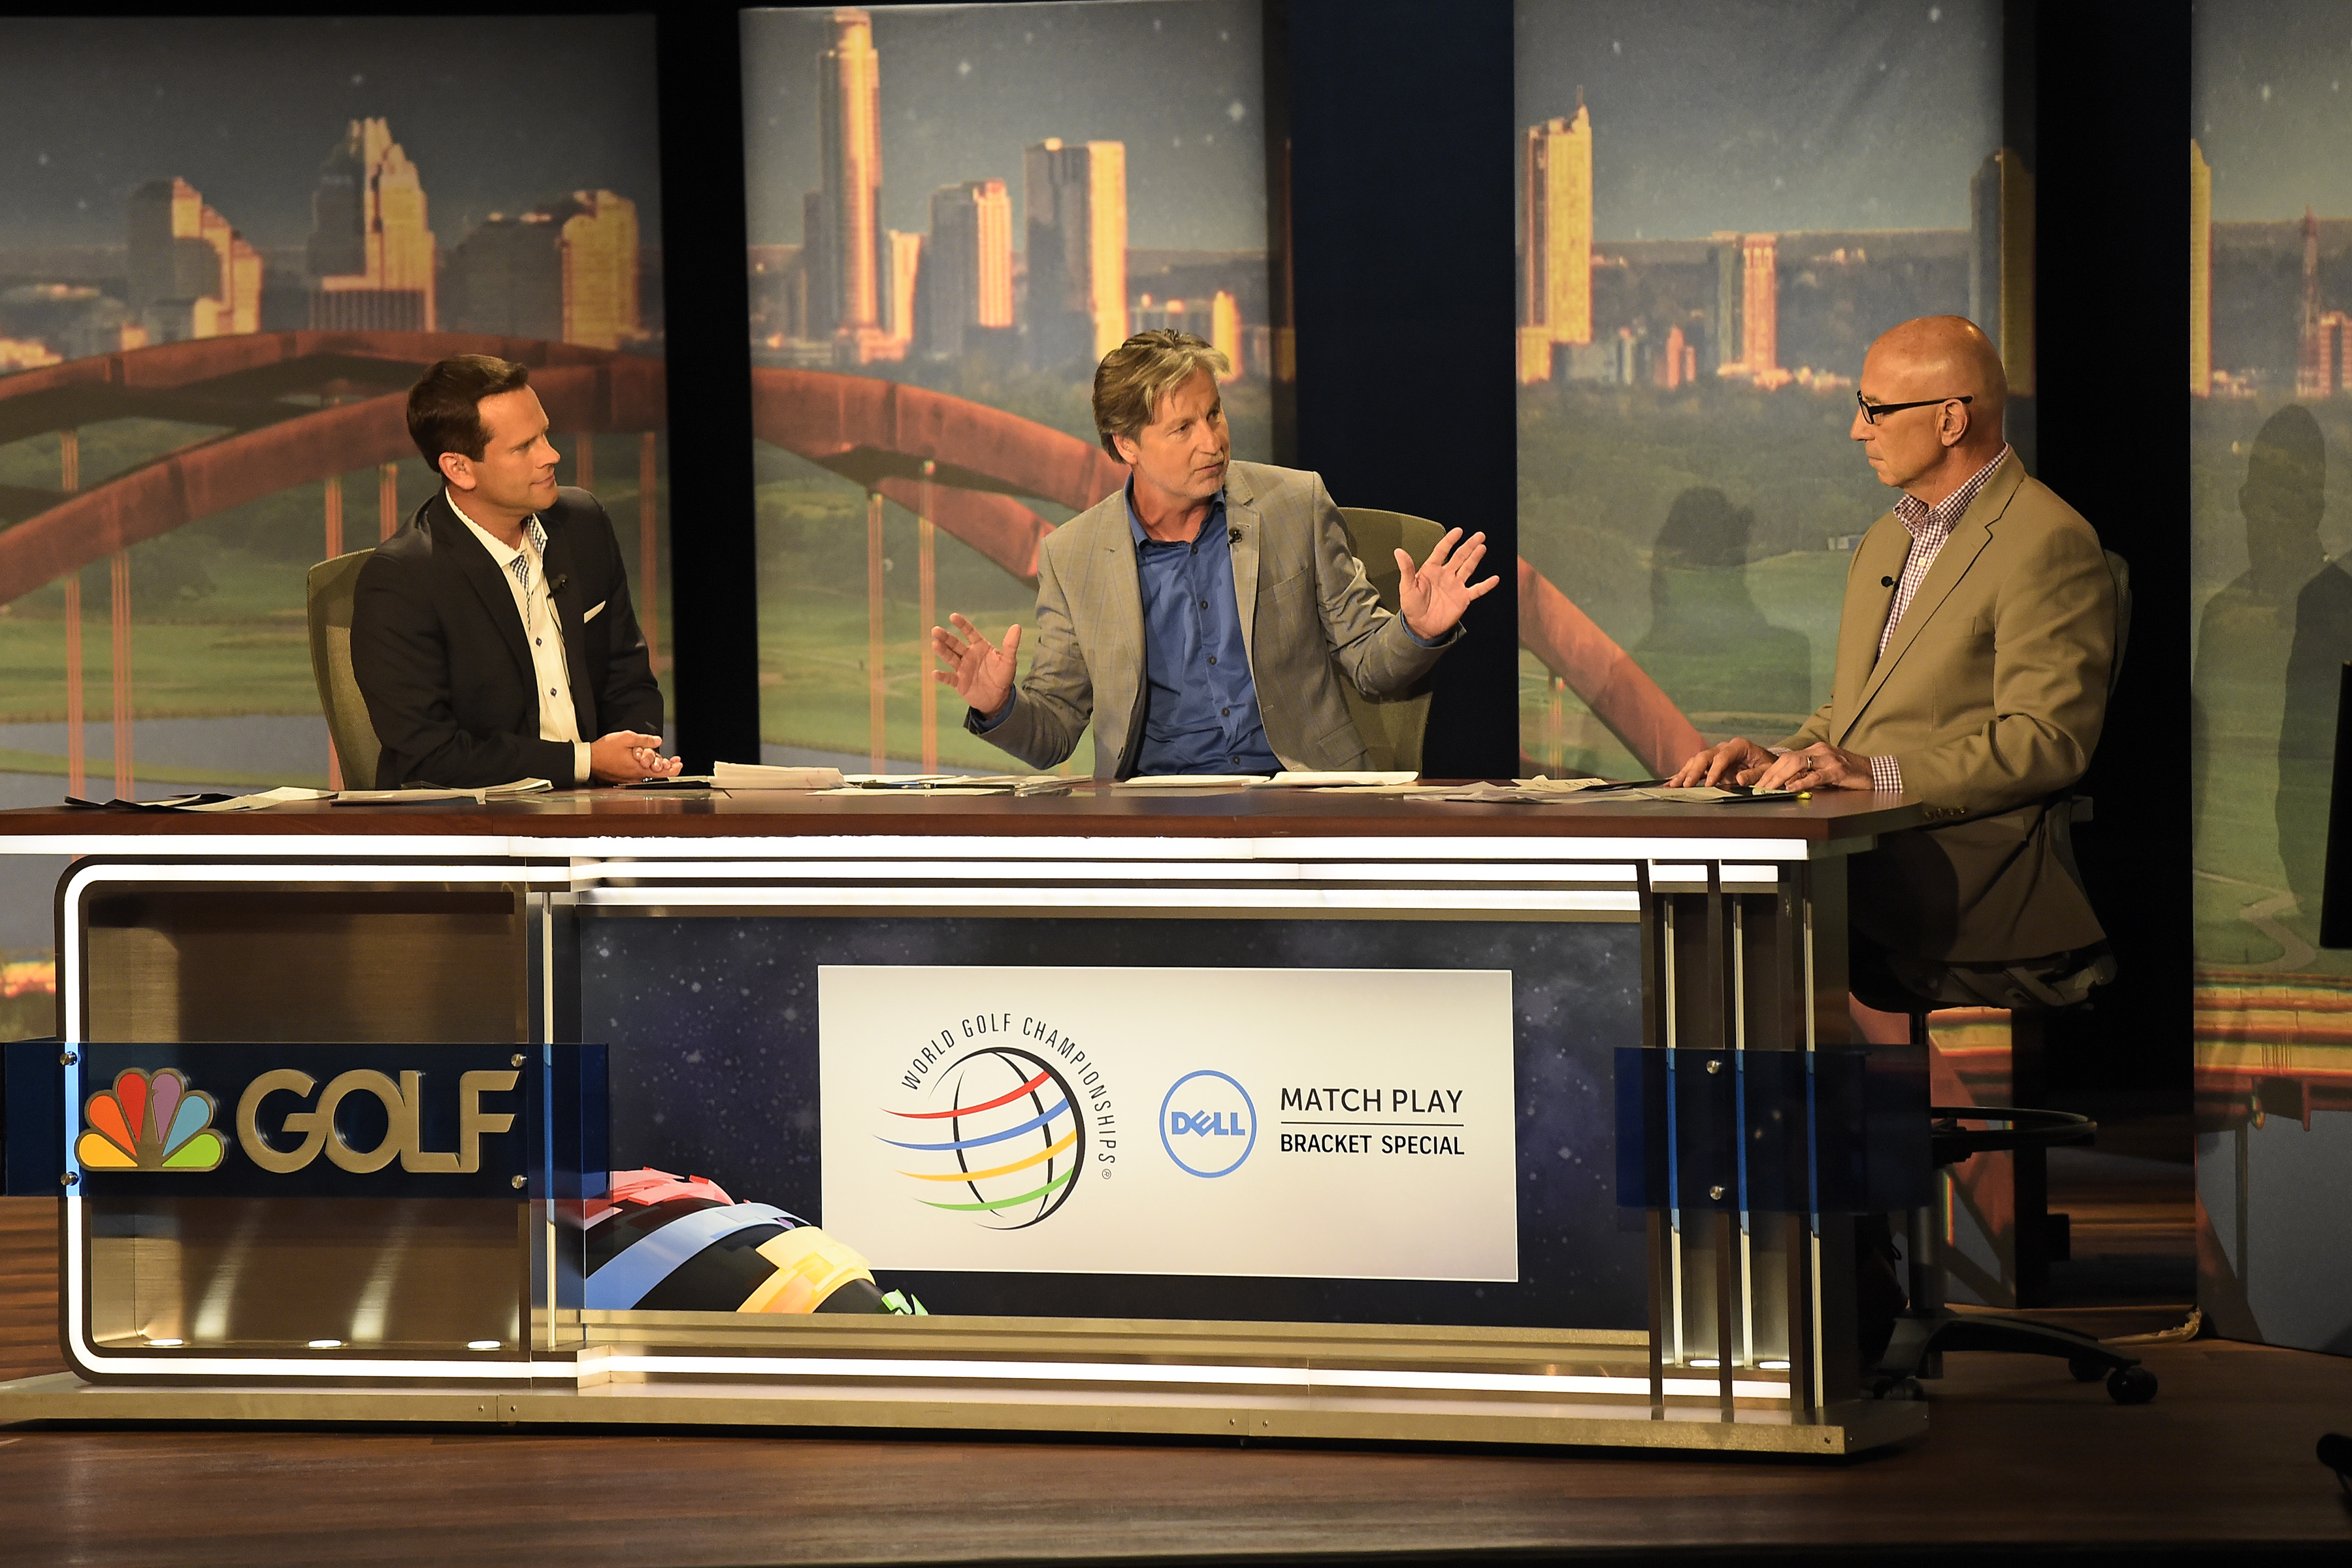 Brandel Chamblee on set at the 2016 WGC Dell Match Play.